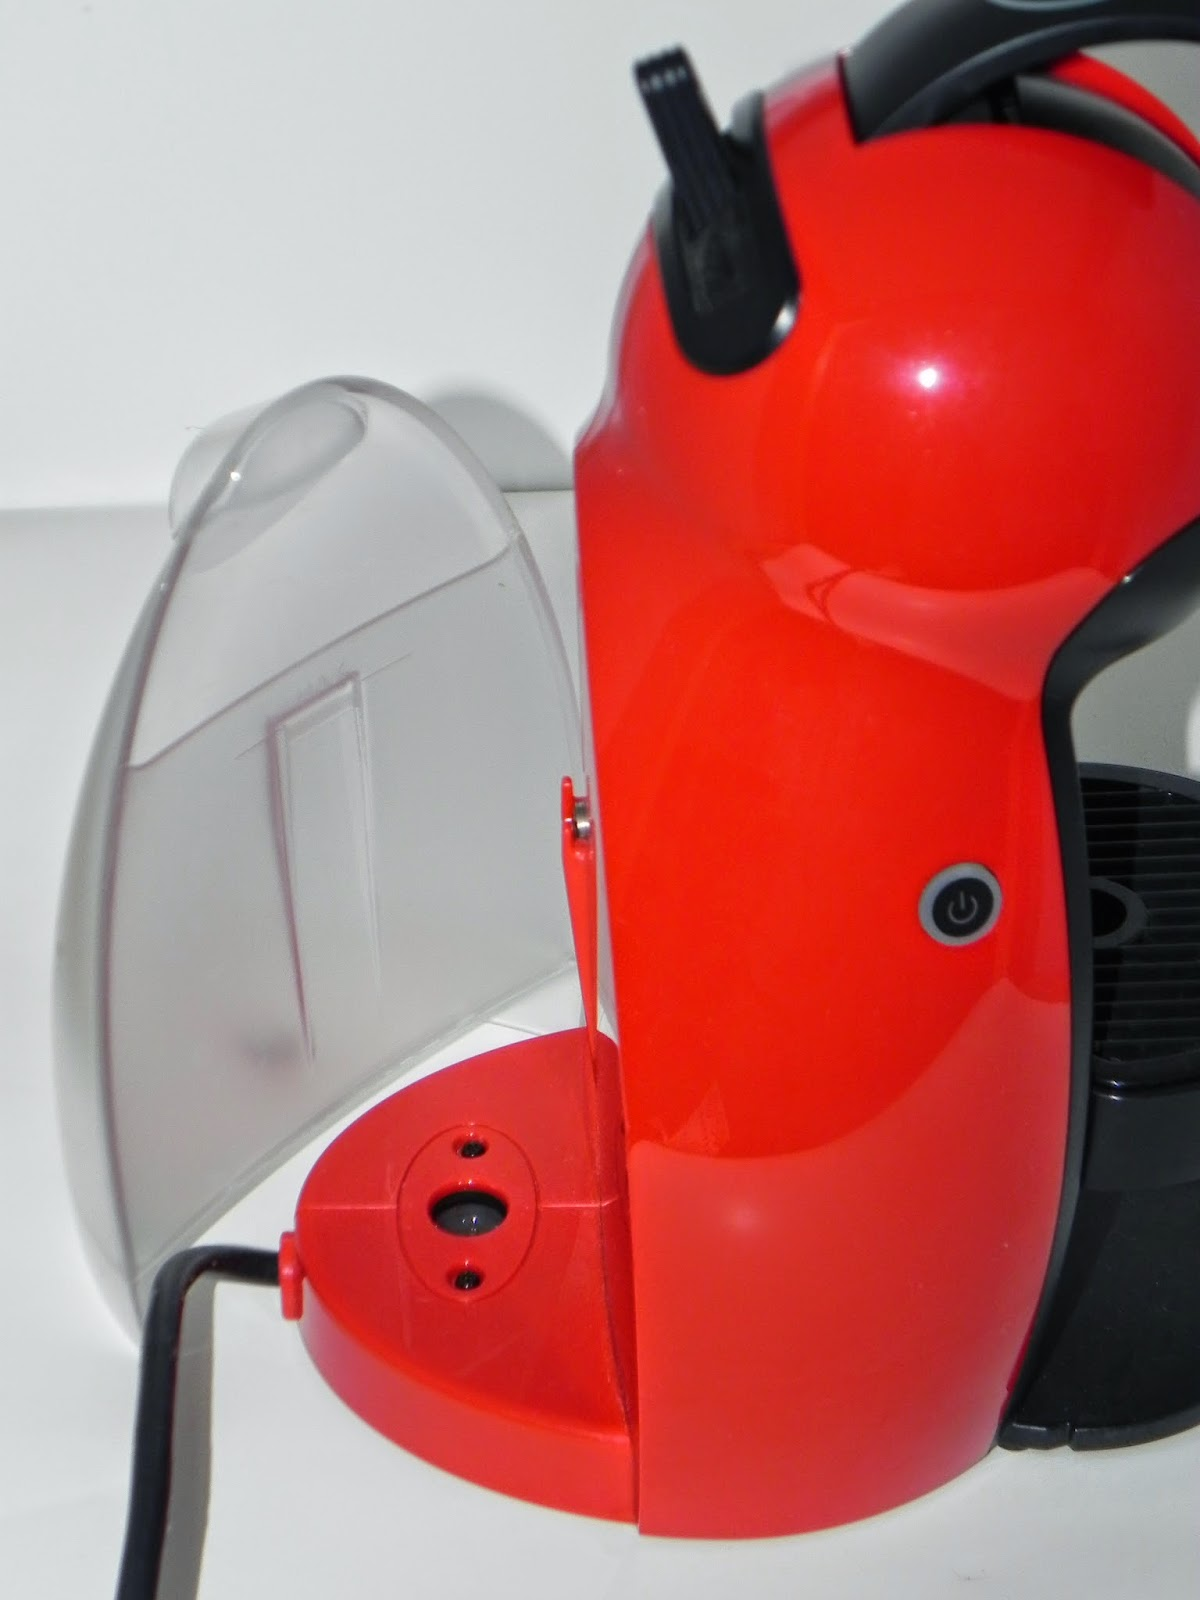 sabores dolce gusto